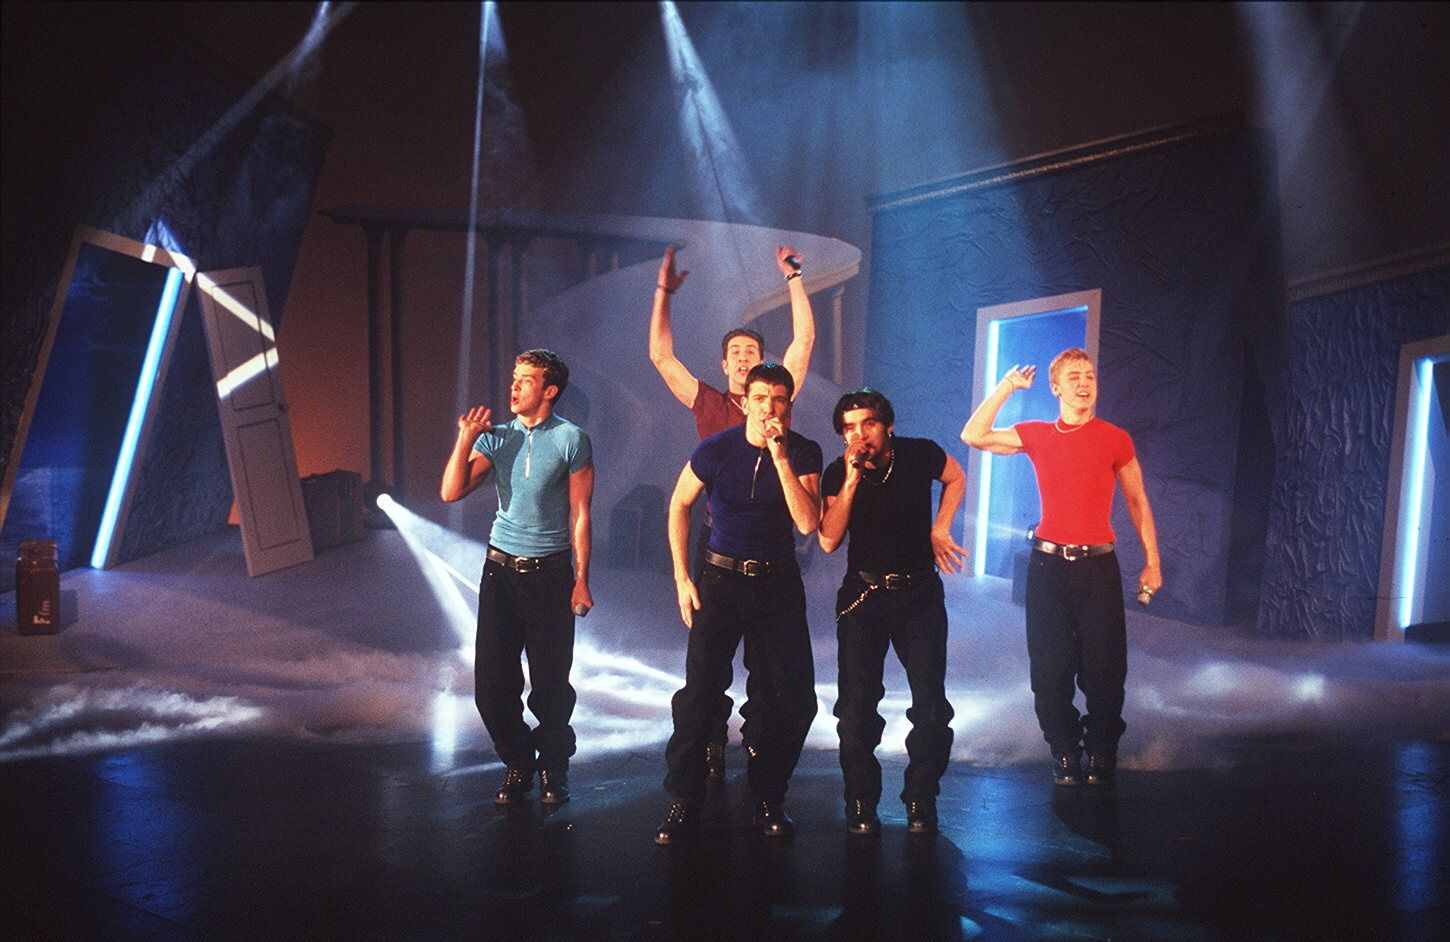 1995: Getting in sync with NSYNC